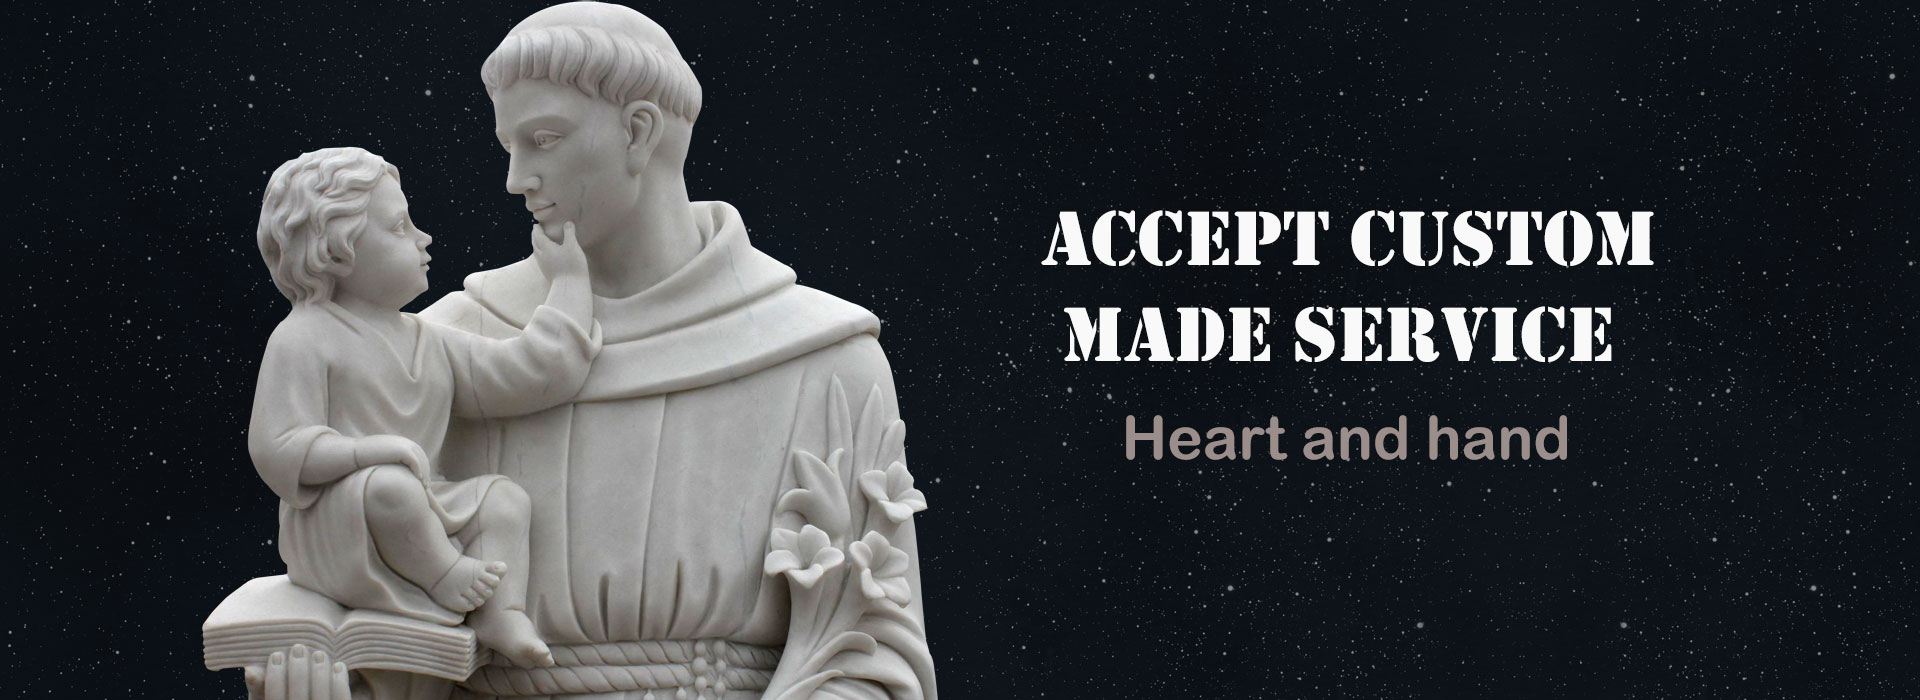 2018 hot sale white marble sculpture saint Anthony statue price on discount sale UK